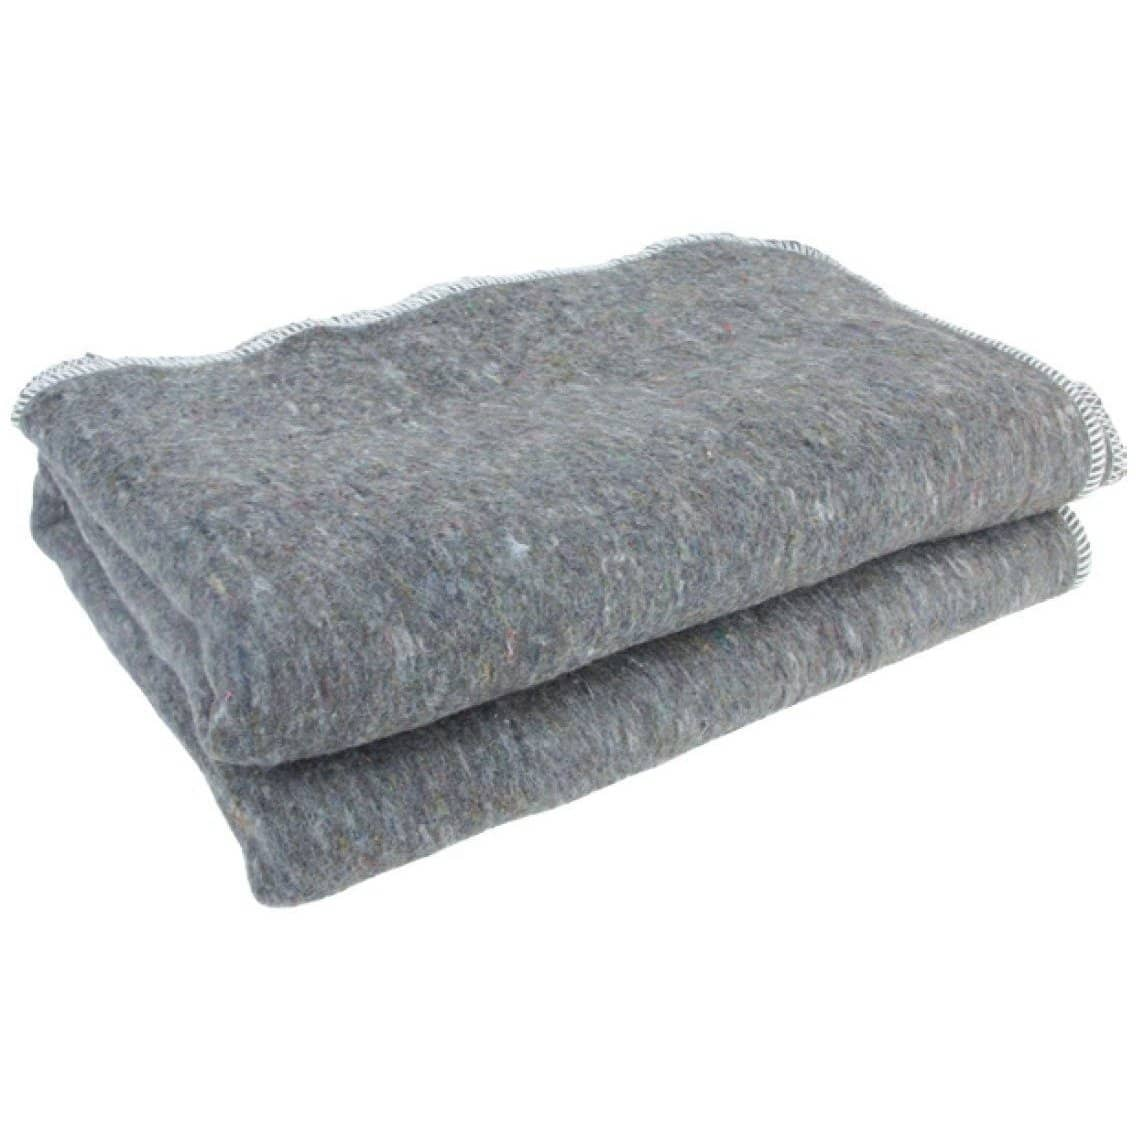 Survival Woolen Blanket